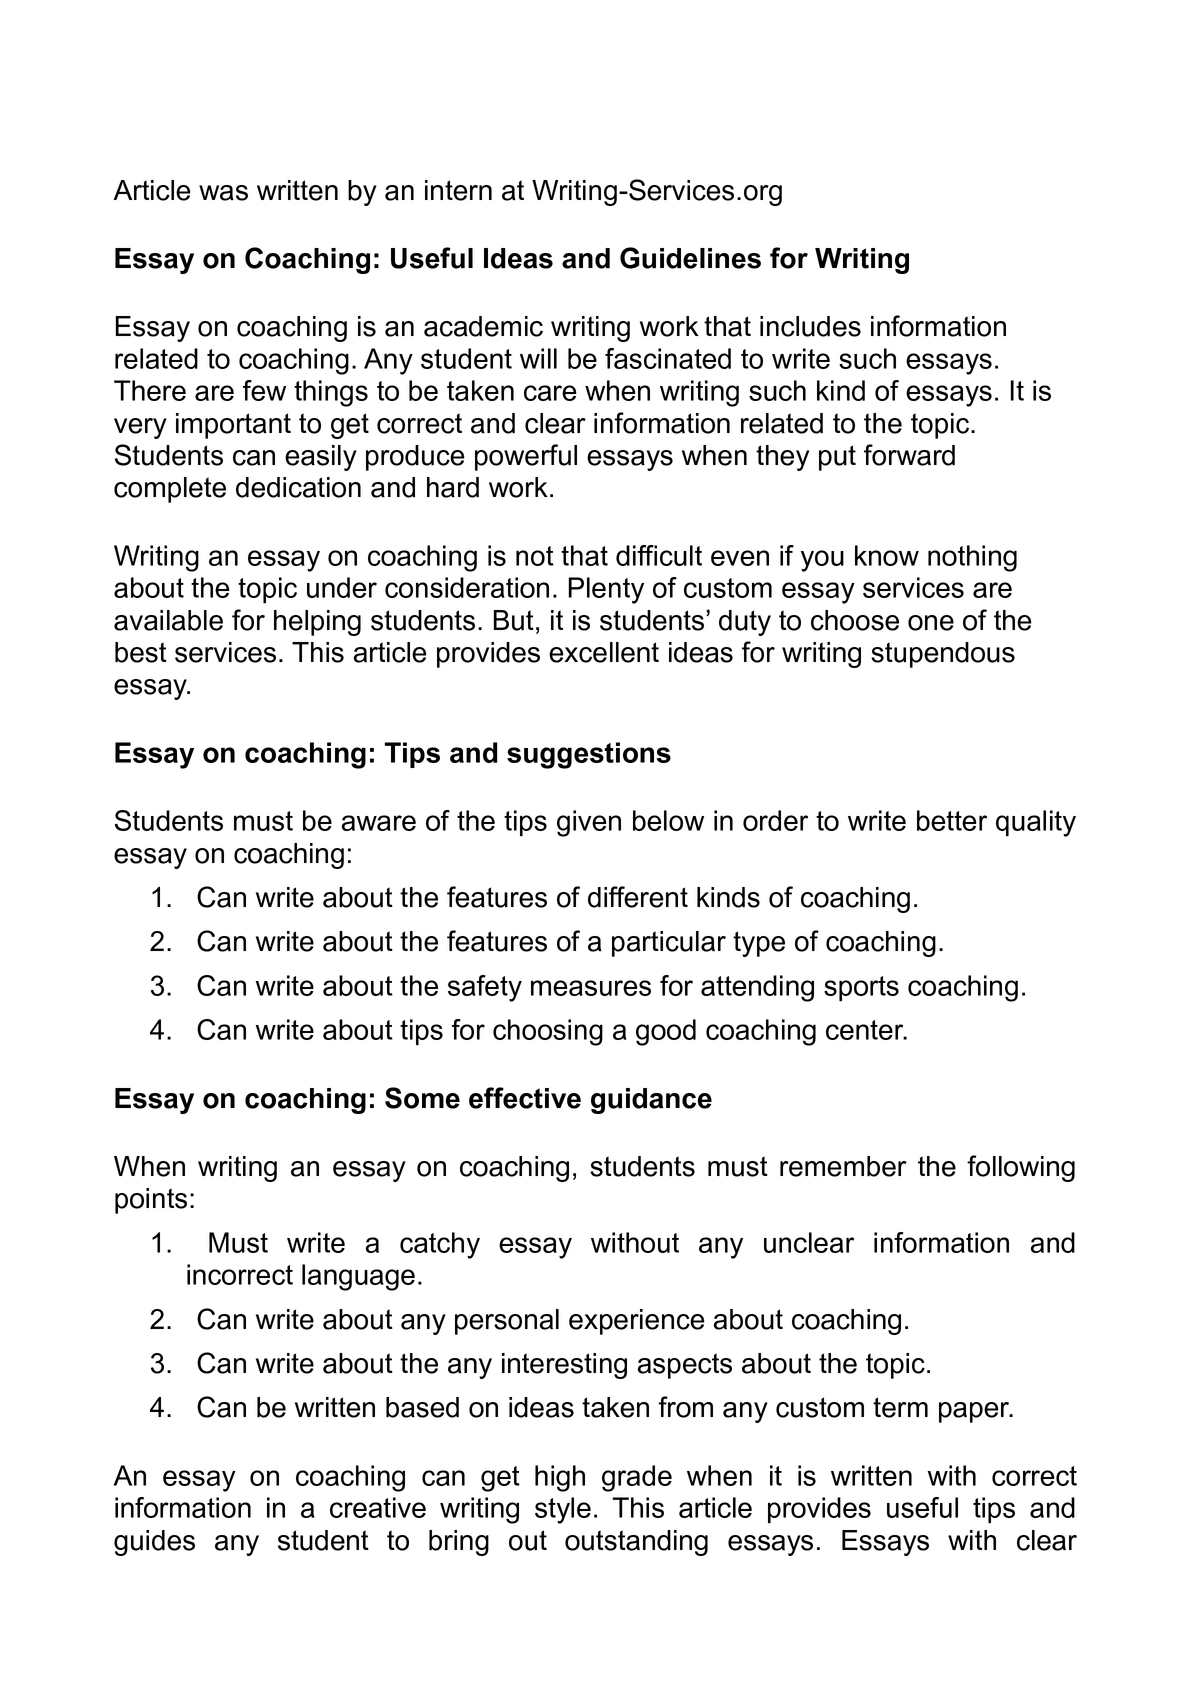 Calamo  Article Was Written By An Intern At Writingservicesorg  Cover Letter Writing Services Uk also How To Write A Proposal For An Essay  Essay Proposal Example